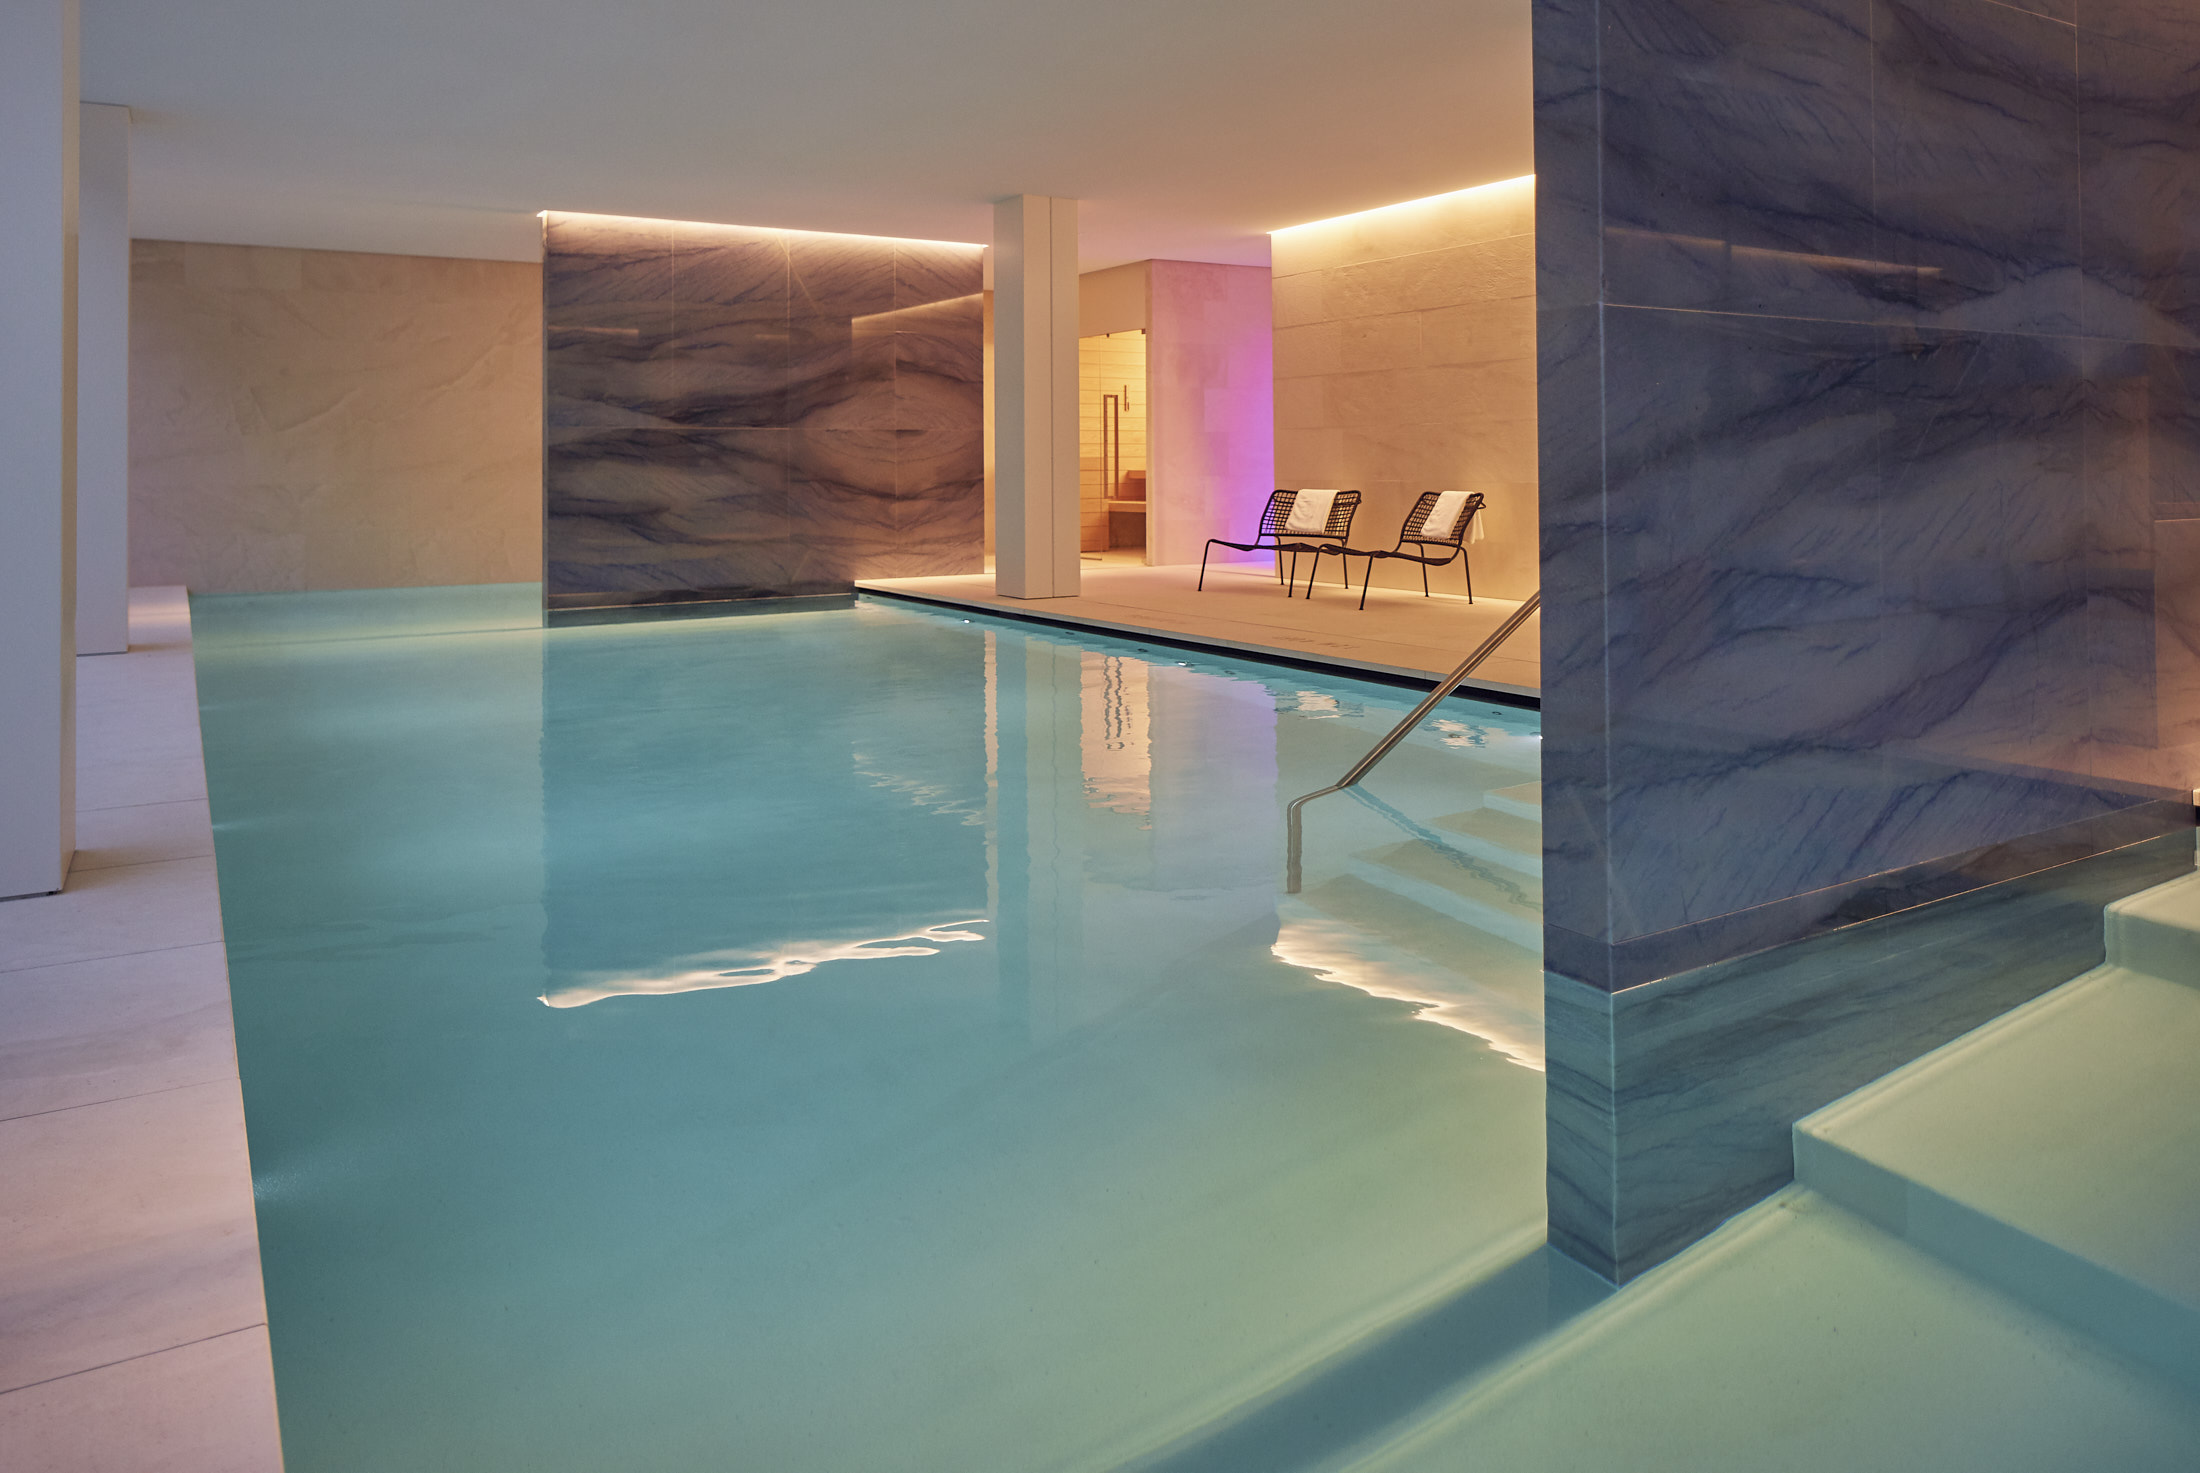 Hilton Como Lake - eforea Spa & Health Club